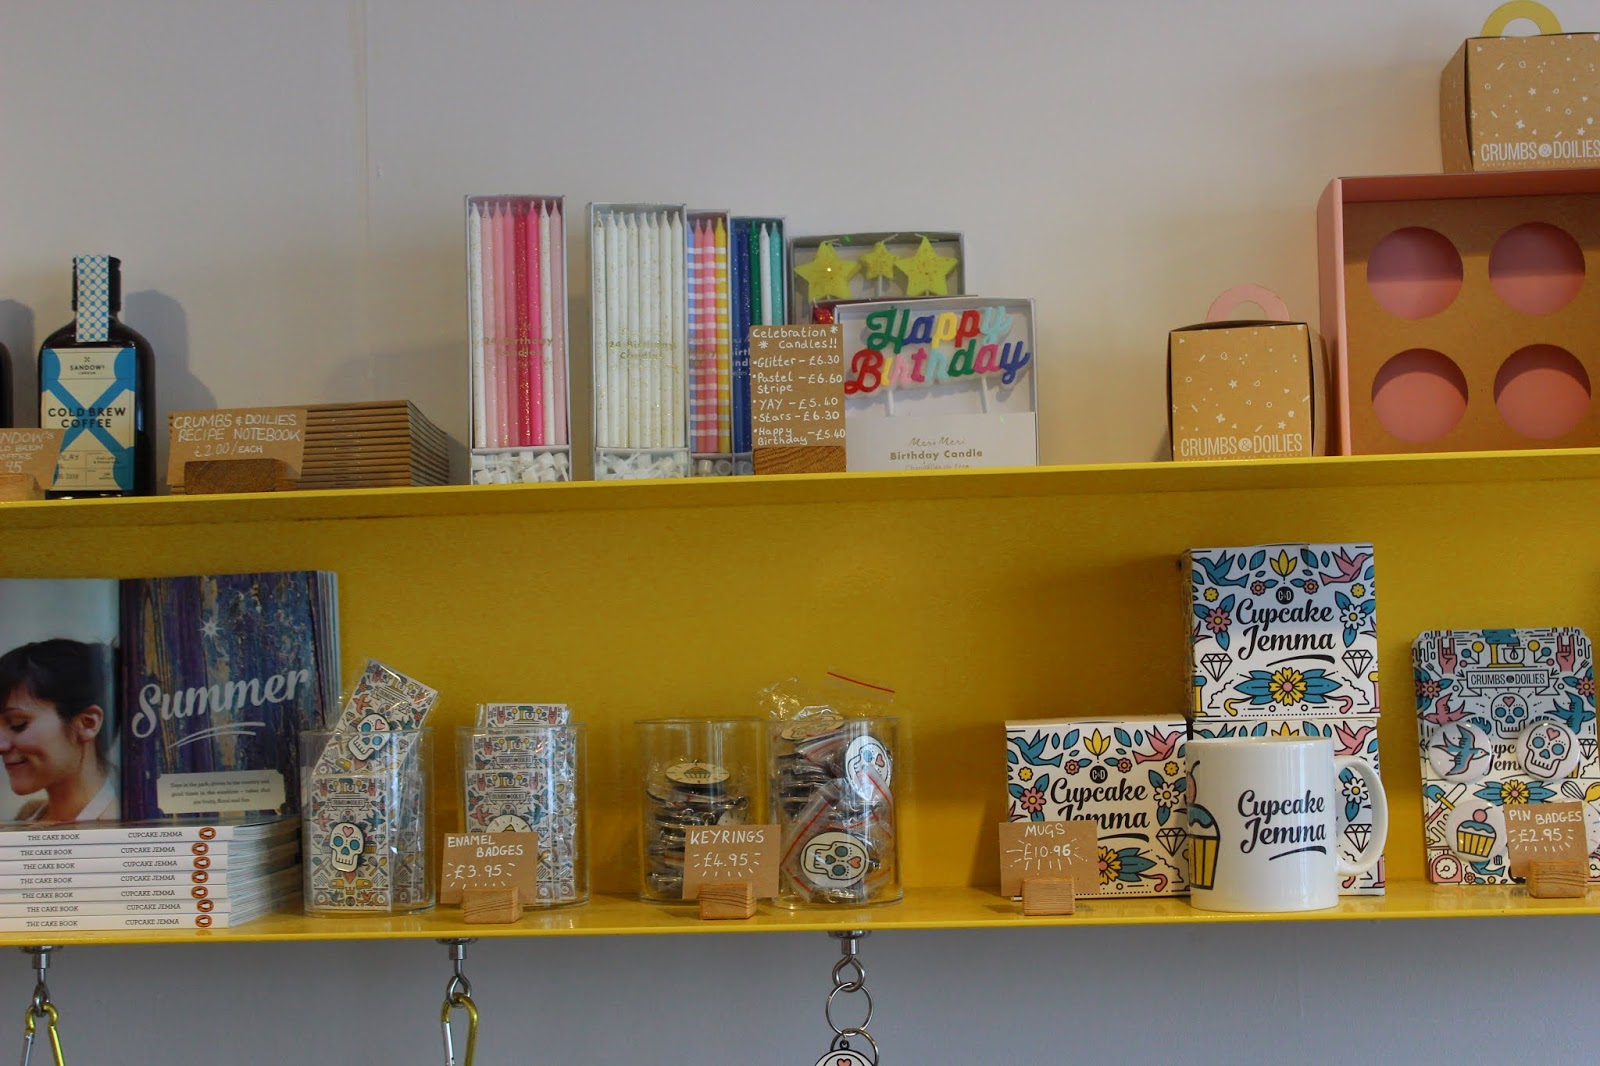 A yellow, colourful bookshelf with baking supplies